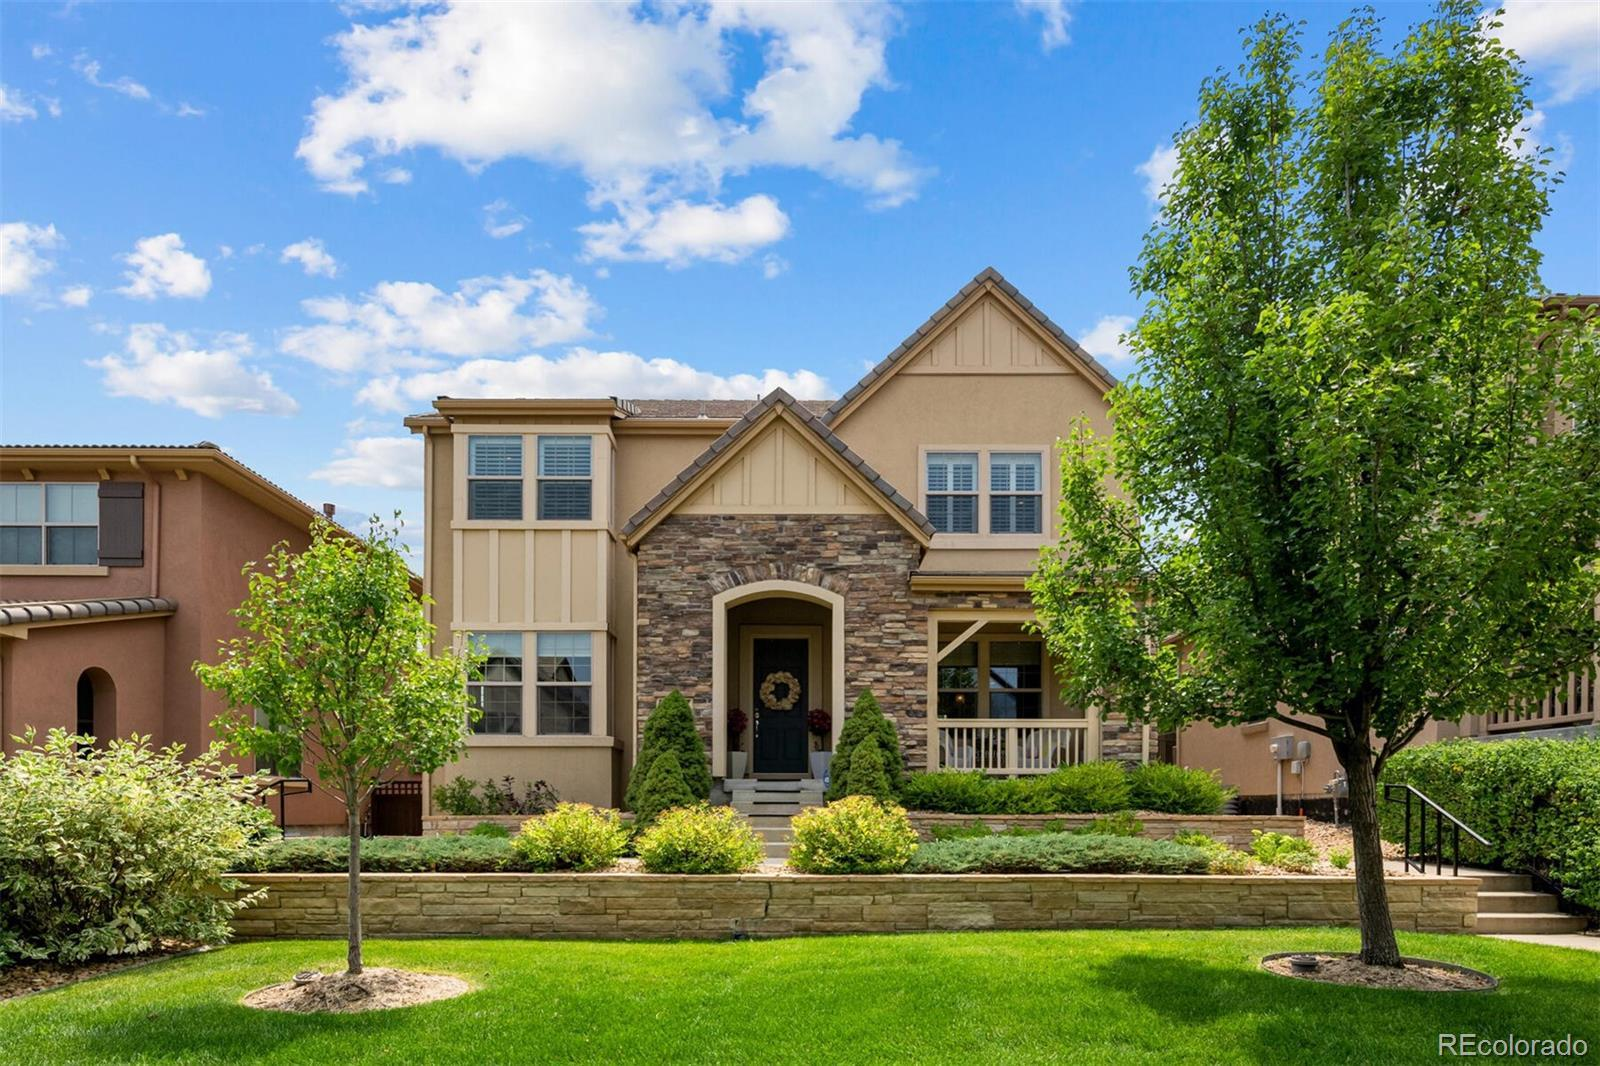 10357 Bluffmont Drive, Lone Tree, CO 80124 - #: 3649502